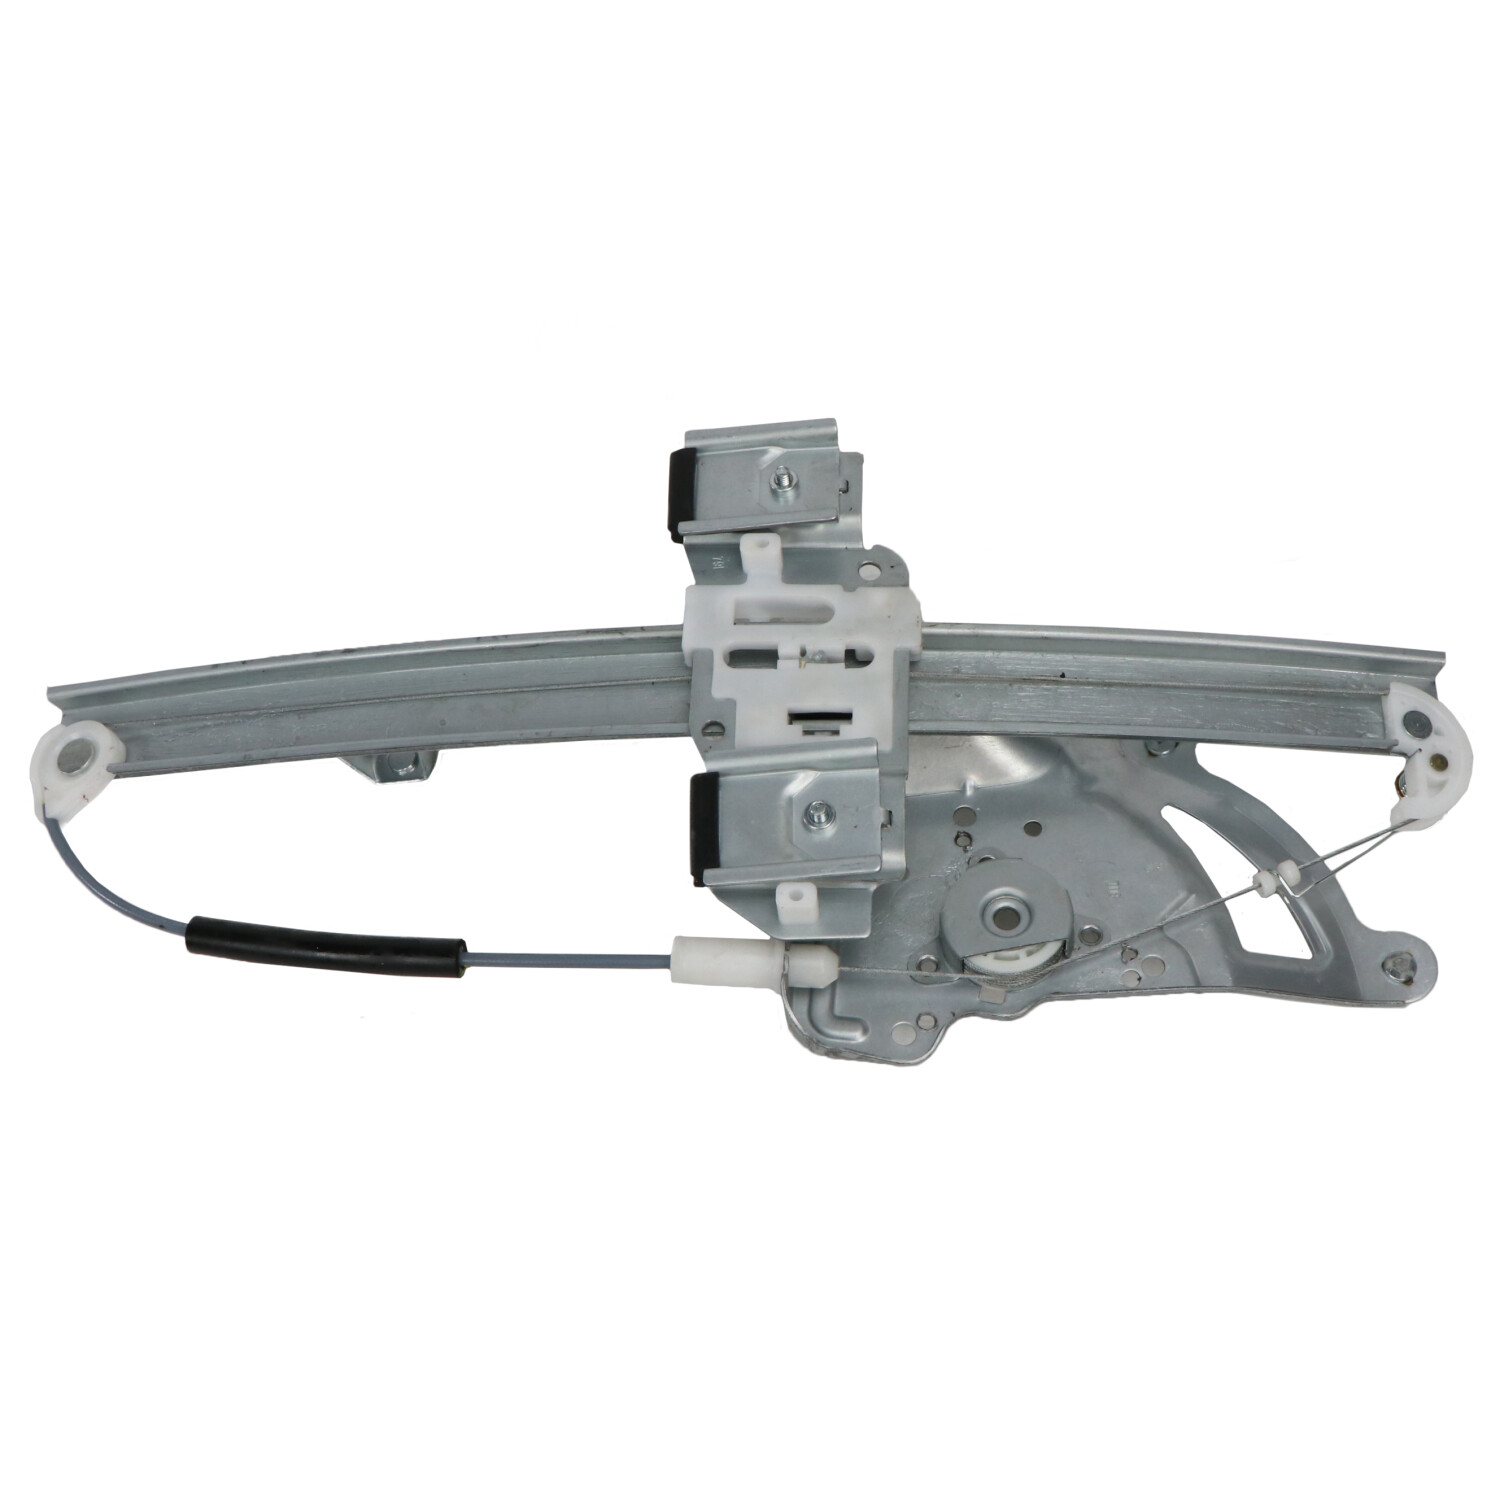 Dorman 740-546 Front Driver Side Power Window Regulator